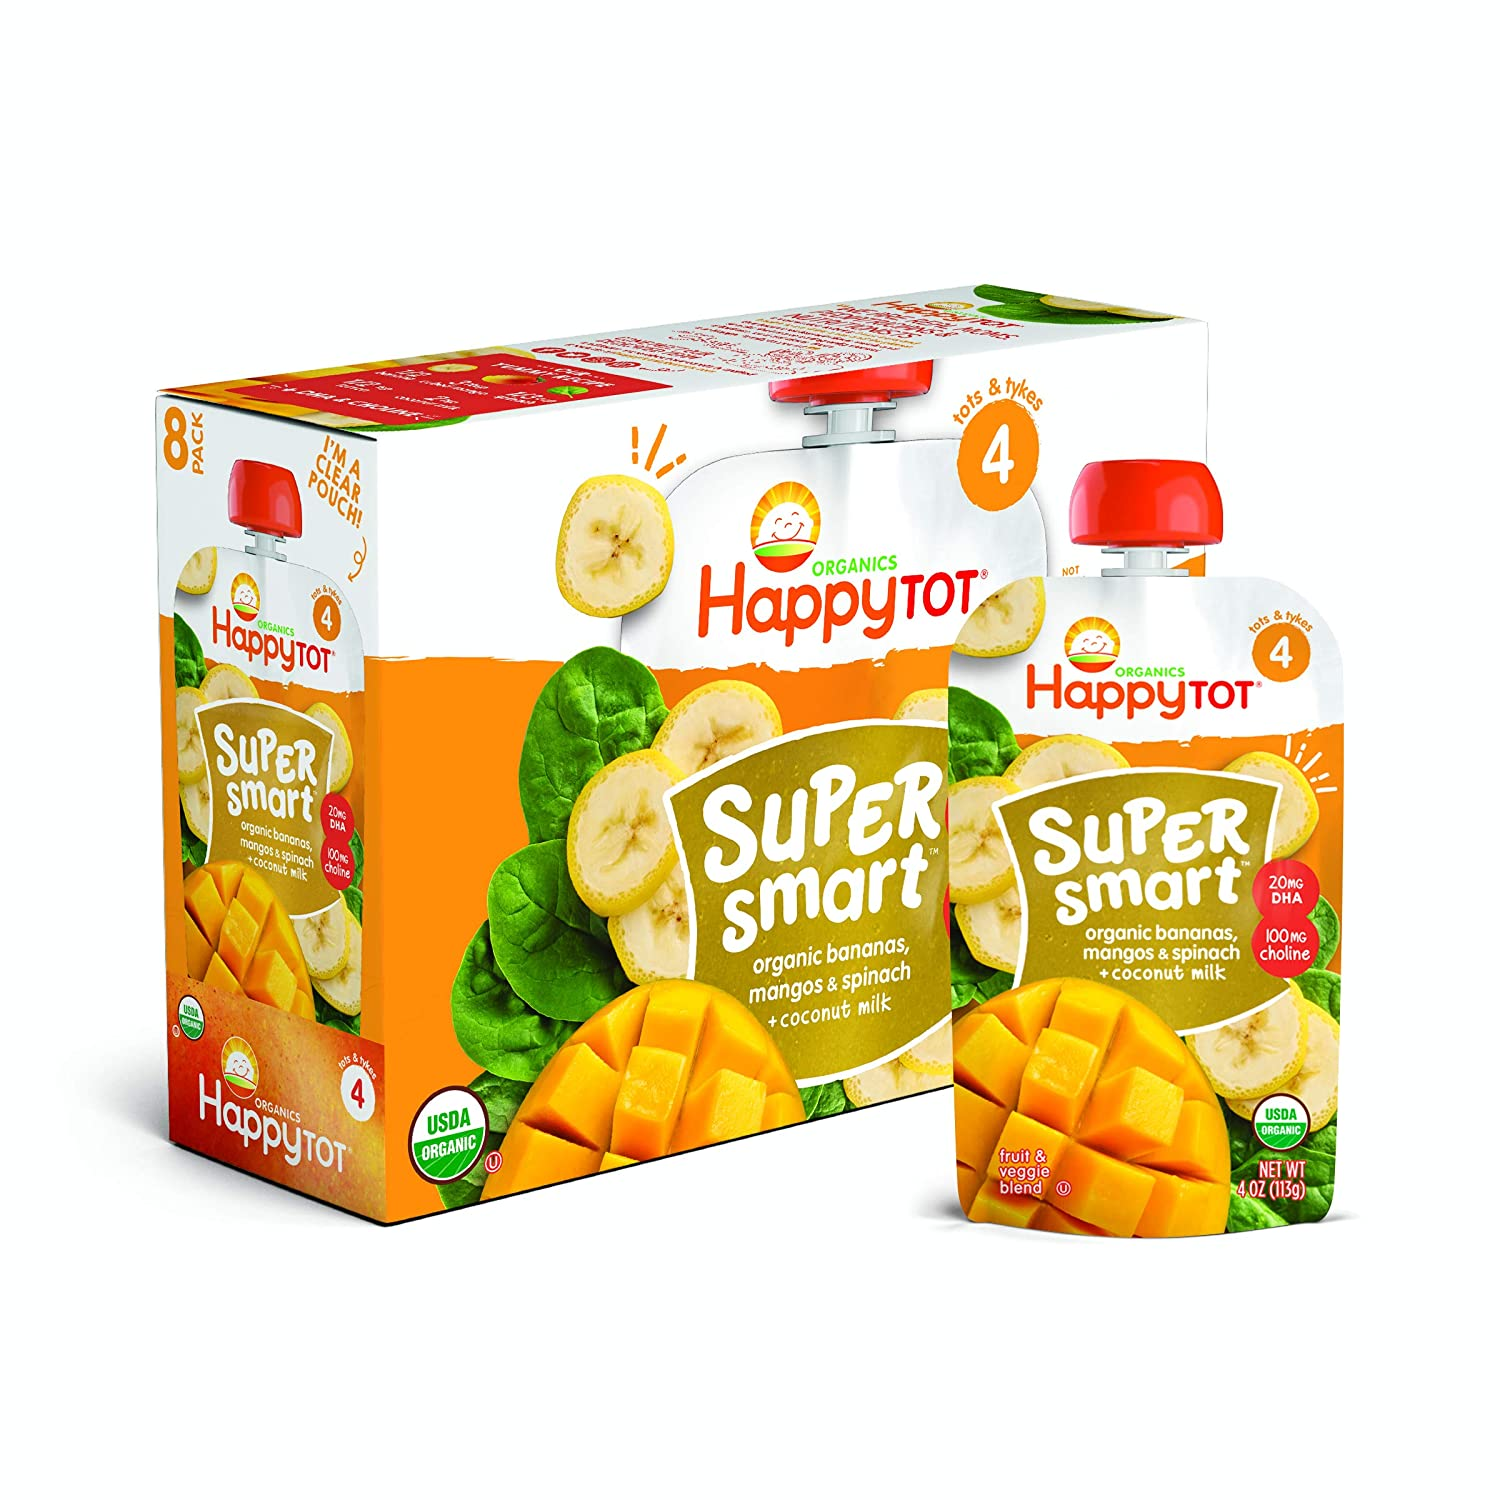 Happy Tot Organic Stage 4 Super Smart Organic Toddler Food Bananas/Mangos/Spinach Plus Coconut, 4 Ounce Pouch (Pack of 8) (Packaging May Vary)